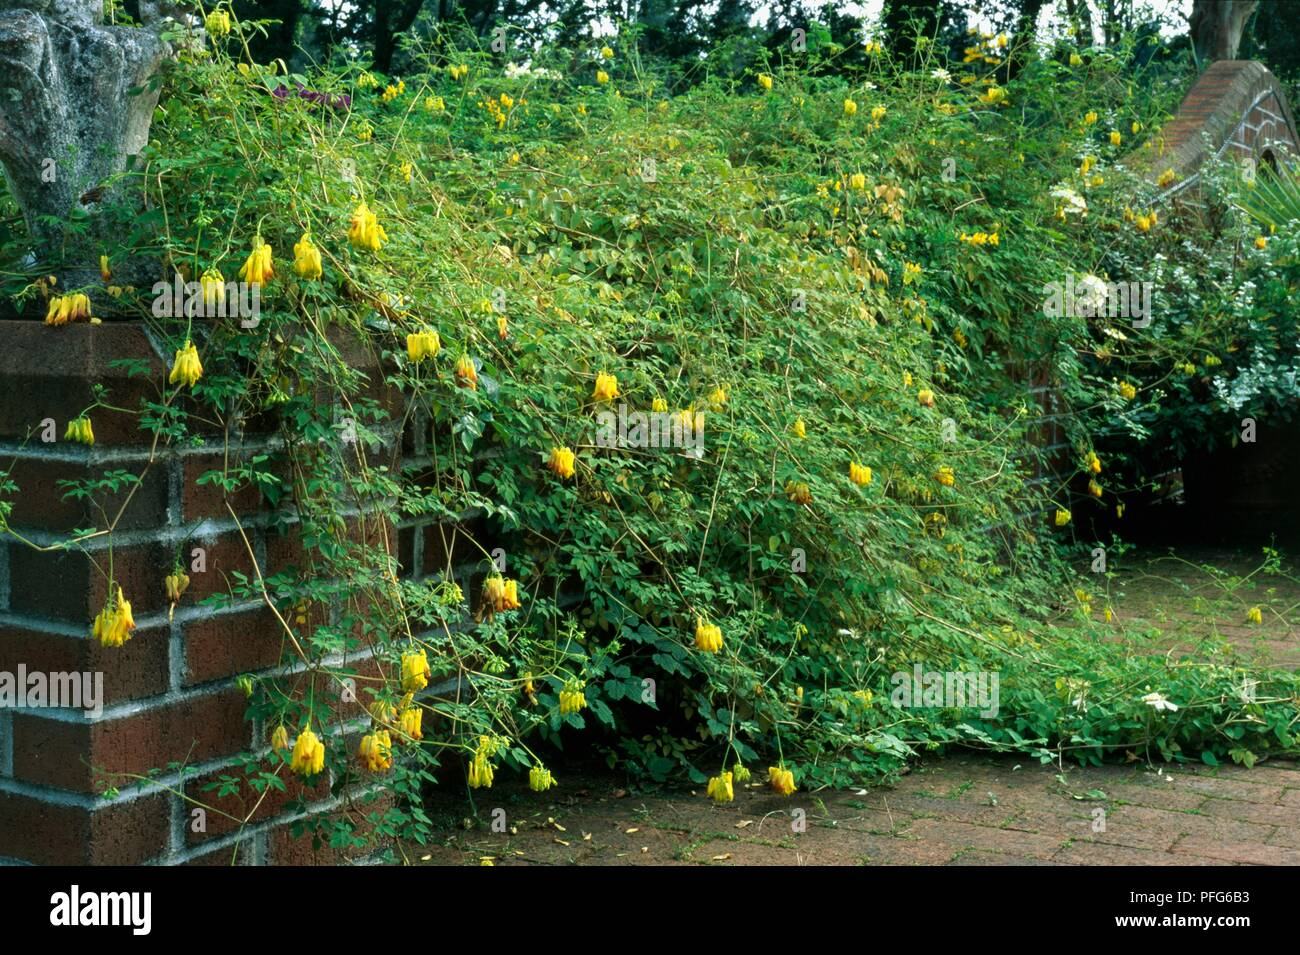 Dicentra Scandens Bleeding Heart Vine With Yellow Flowers And